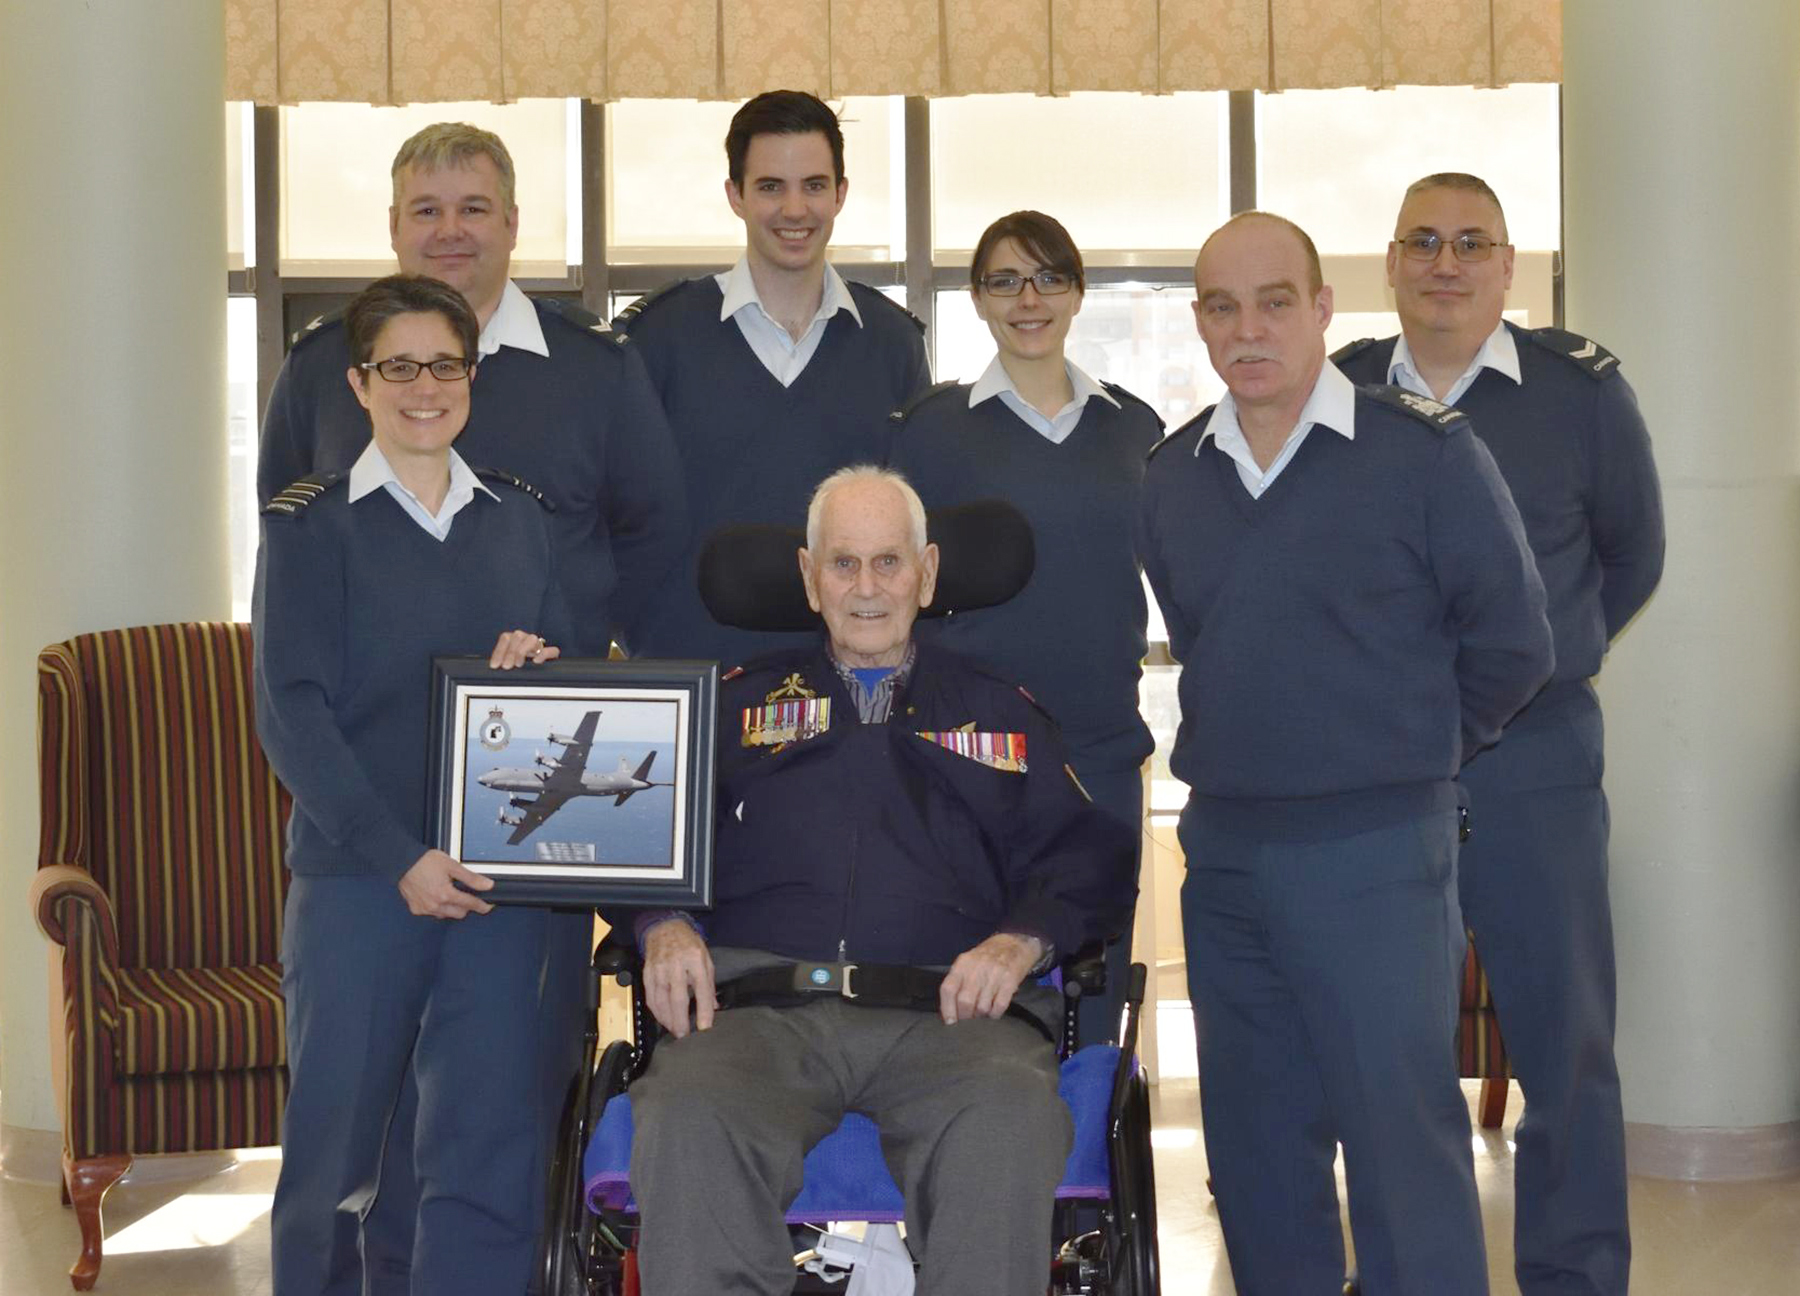 Lieutenant-Colonel (retired) Russell Hubley, DFC, CD (seated) and, from left to right, 405 (Long Range Patrol) Squadron Commanding Officer Lieutenant-Colonel Marie-Claude Osmond, and squadron members Corporal Timothy Joice, Lieutenant Evan Fay, Aviator Sarah Poulin, Squadron Chief Warrant Officer Craig Chislett, and Corporal Don Kirkwood, gather for a photograph on January 31, 2017, at Camp Hill Veterans Hospital in Halifax, Nova Scotia. PHOTO: Corporal Don Kirkwood